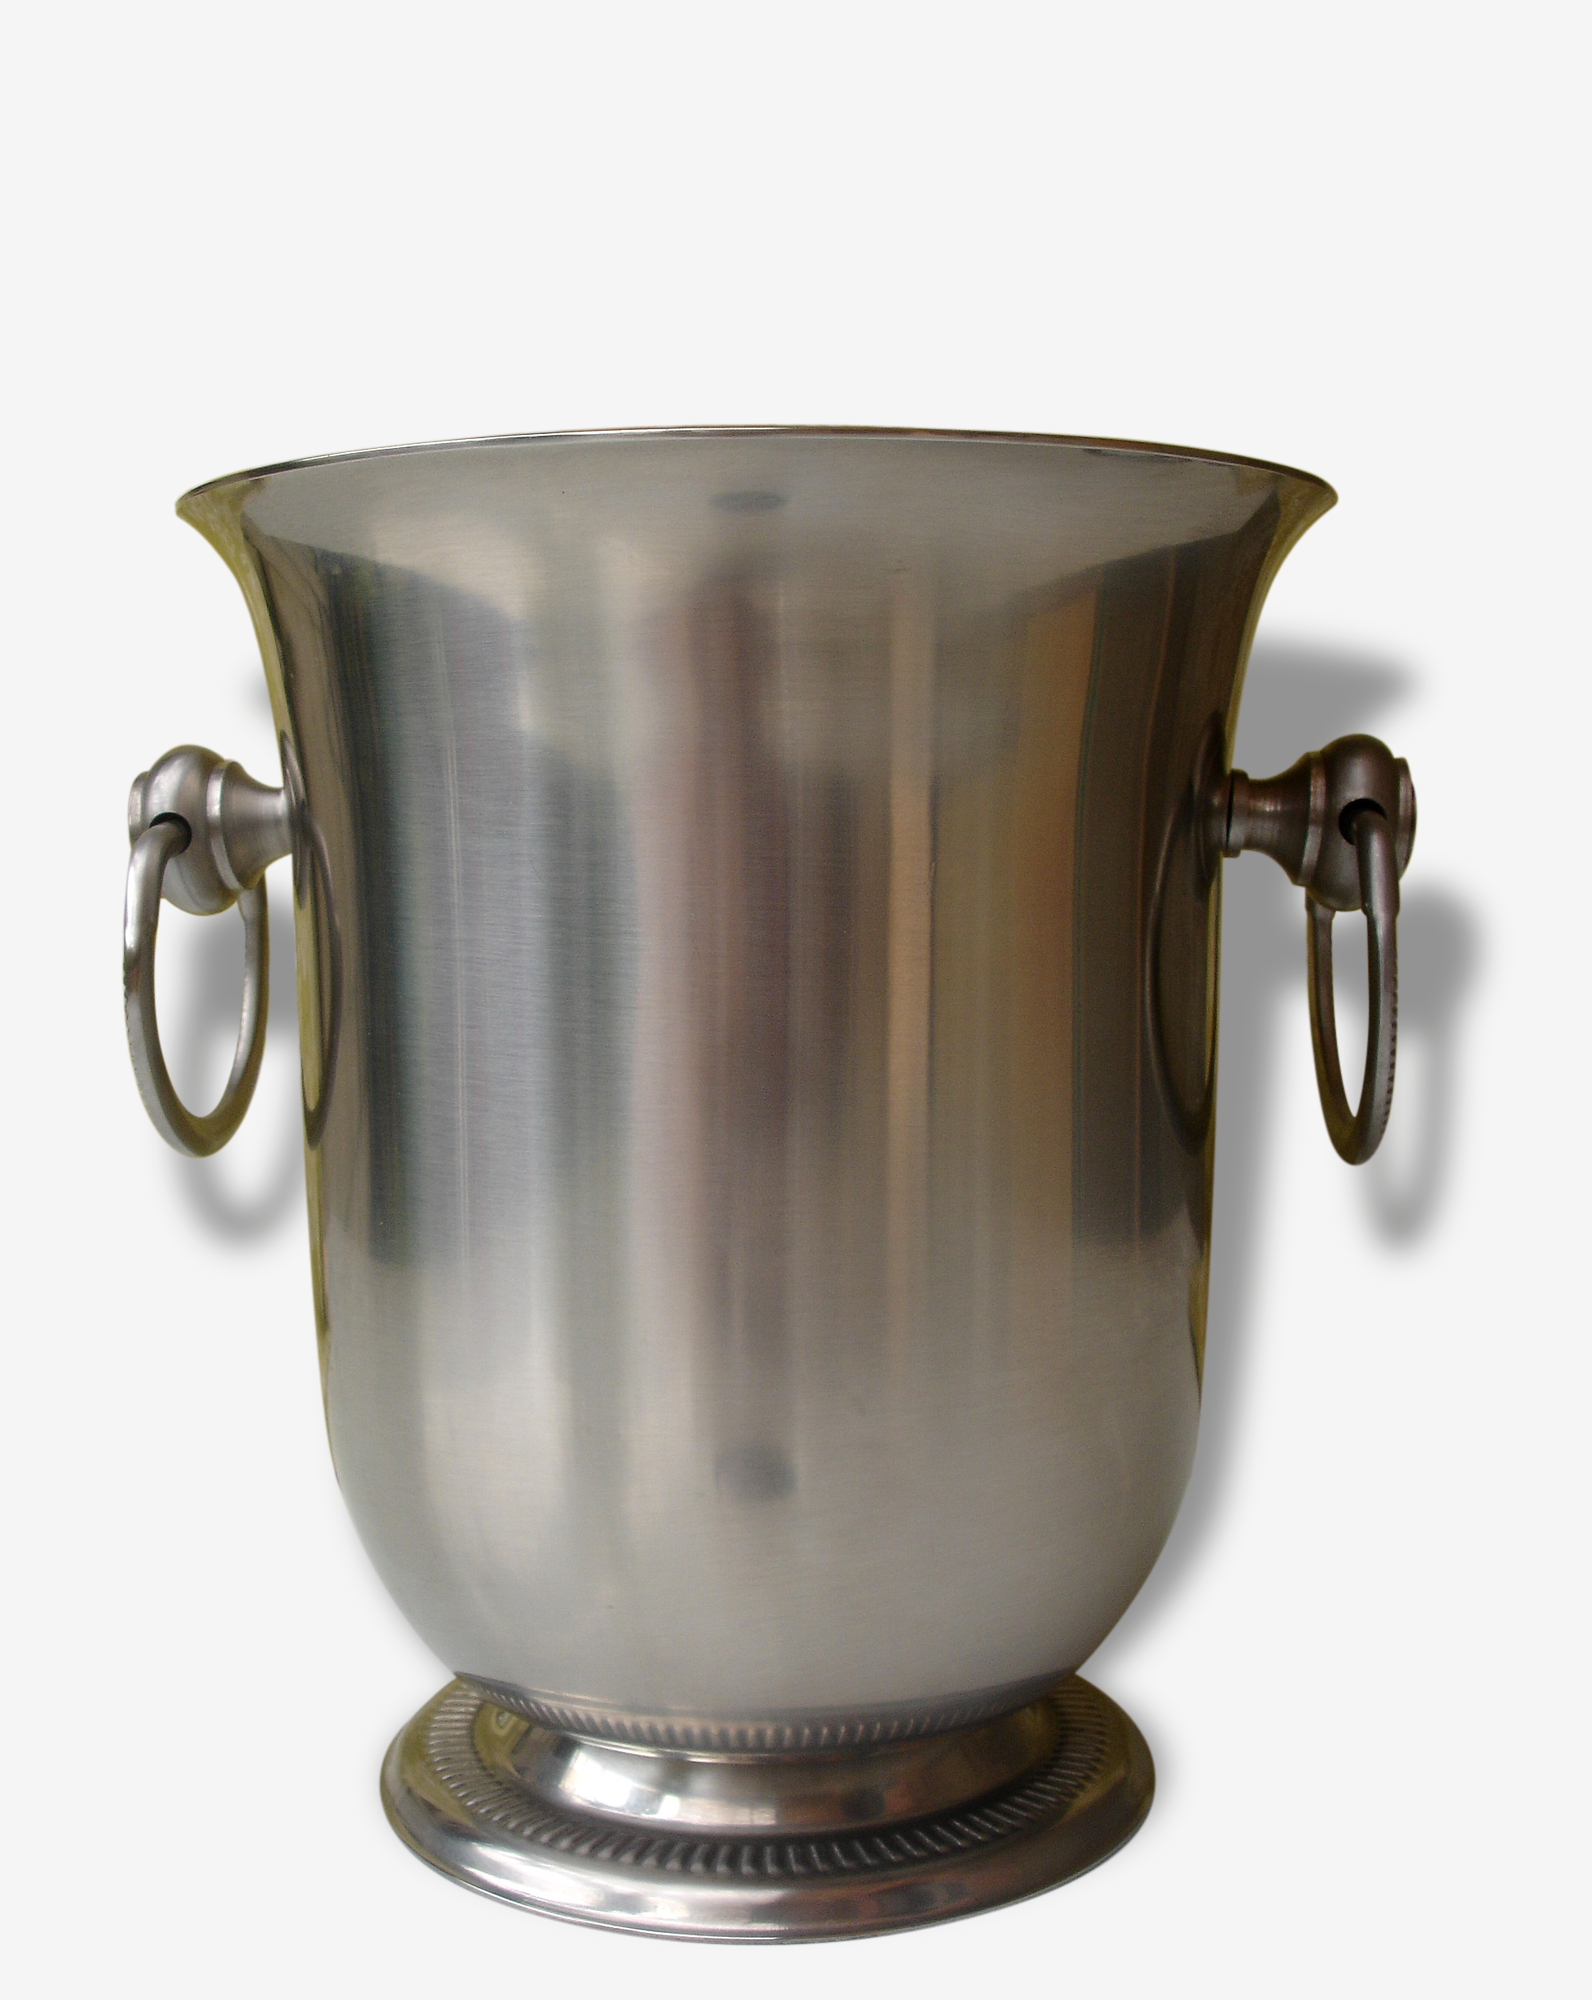 Jean Couzon Orfèvre french stainless steel ice/champagne bucket from the 1970s